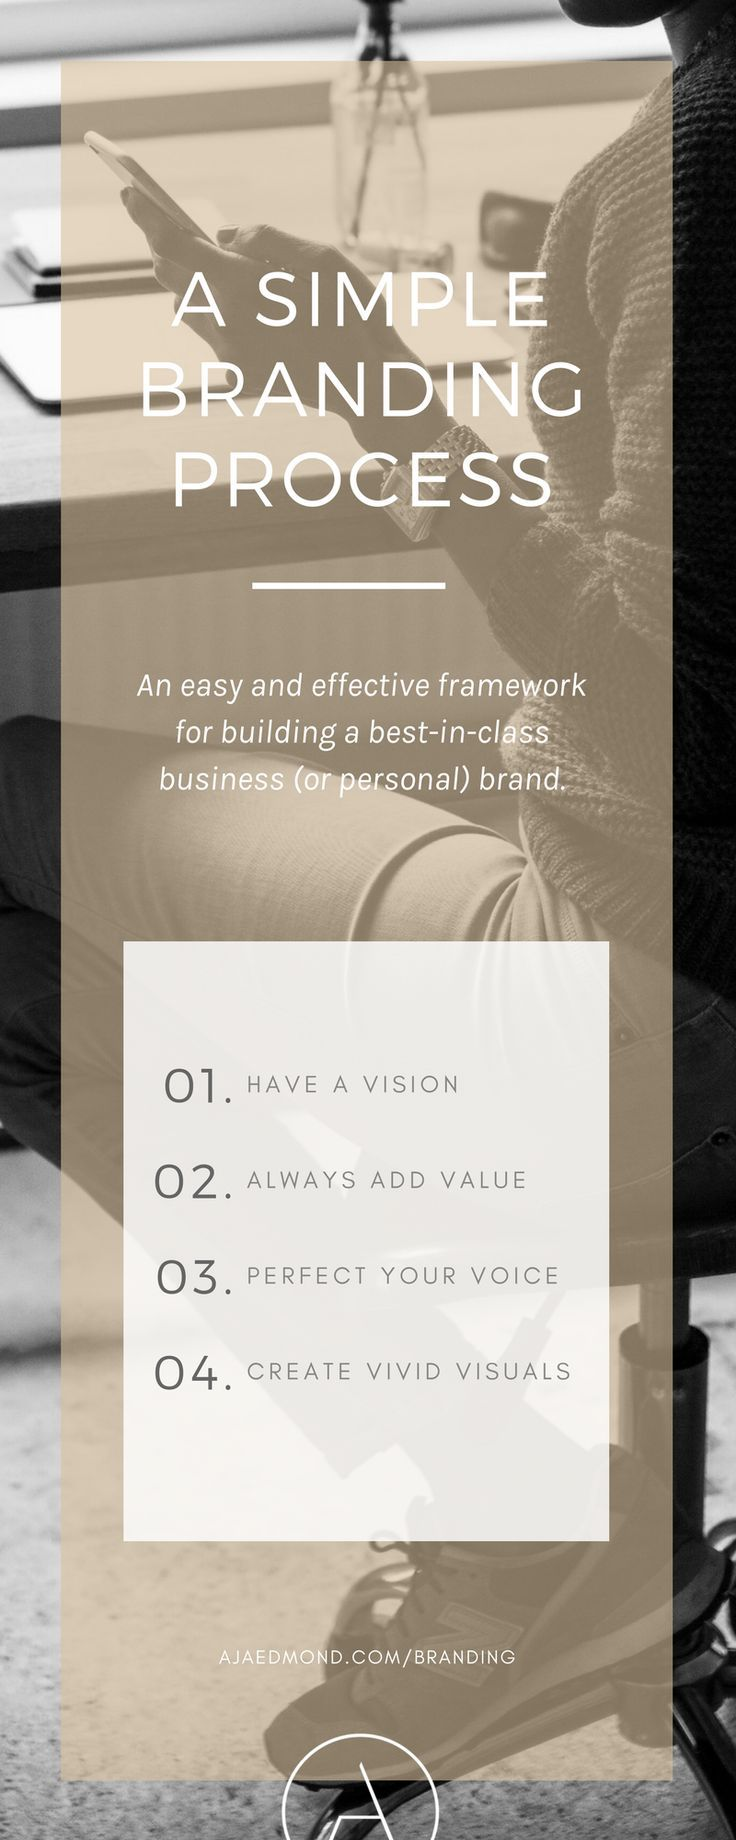 a simple branding framework   free e-course and resources @ ajaedmond.com/branding   brand strategy template   brand yourself   brand your business   personal branding   small business branding   small business owners   creative entrepreneurs   brand strategy framework   how to brand yourself   how to brand your business